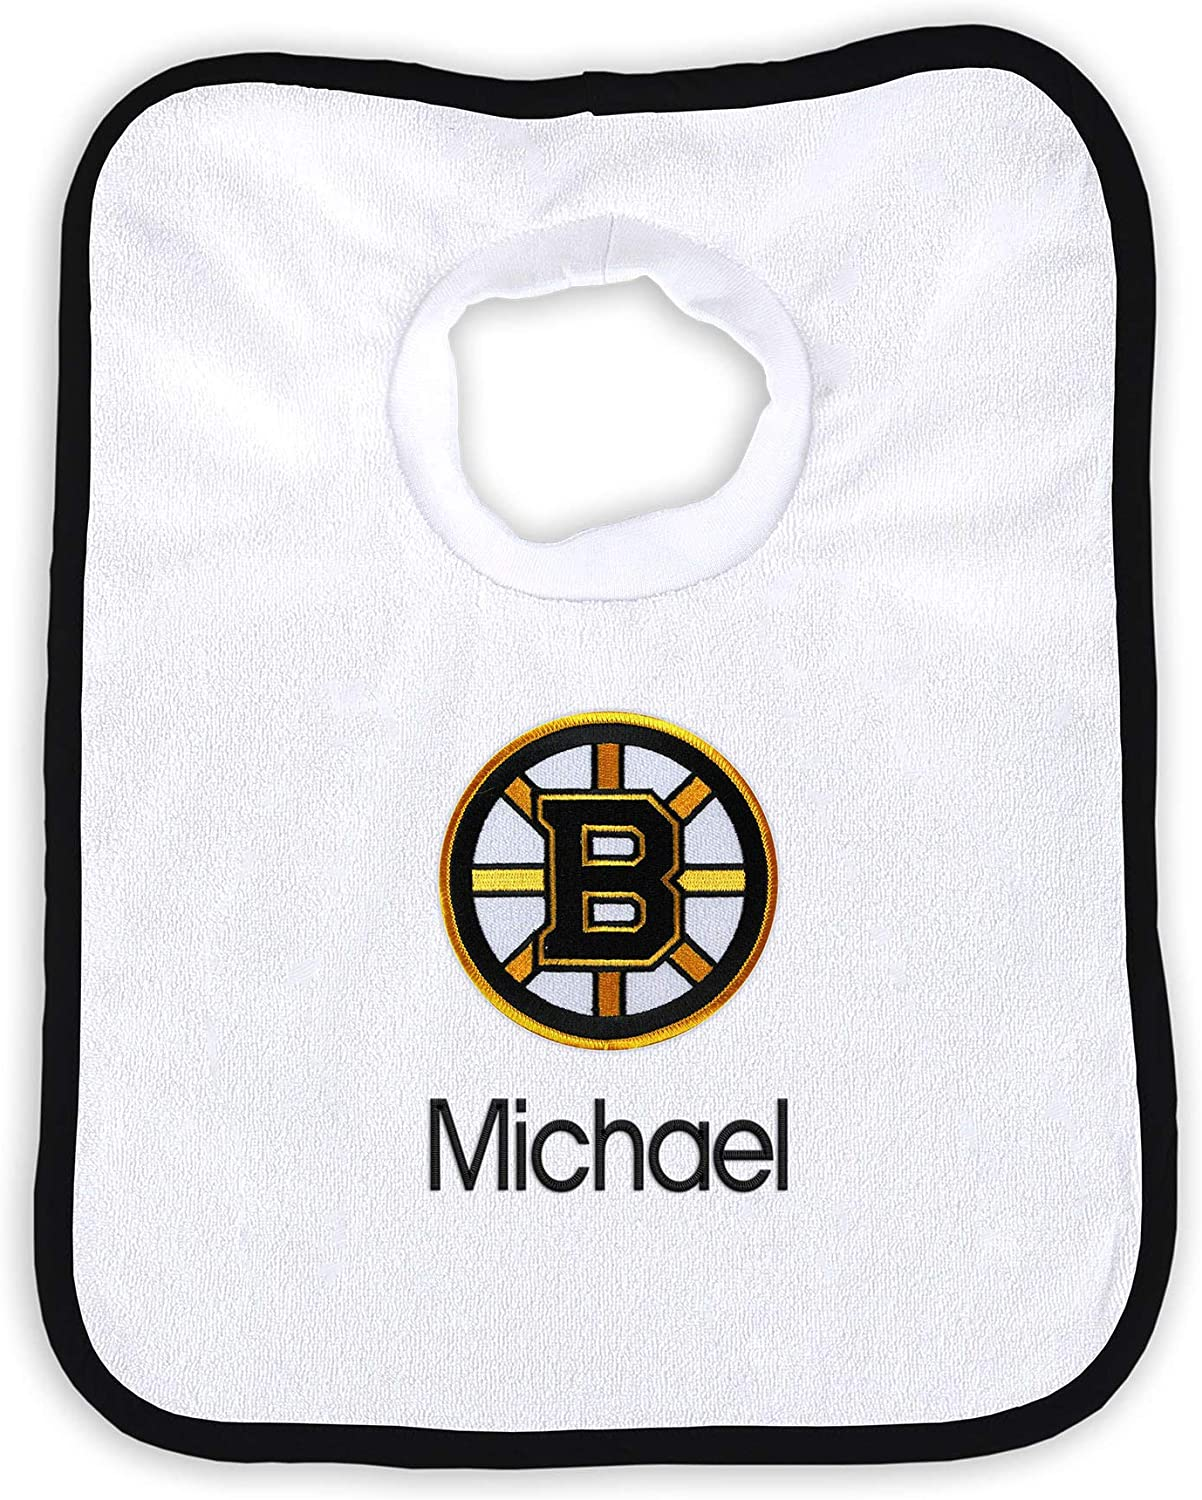 Designs by Chad and Jake Boston Bruins Infant Personalized Bib /& Burp Cloth Set